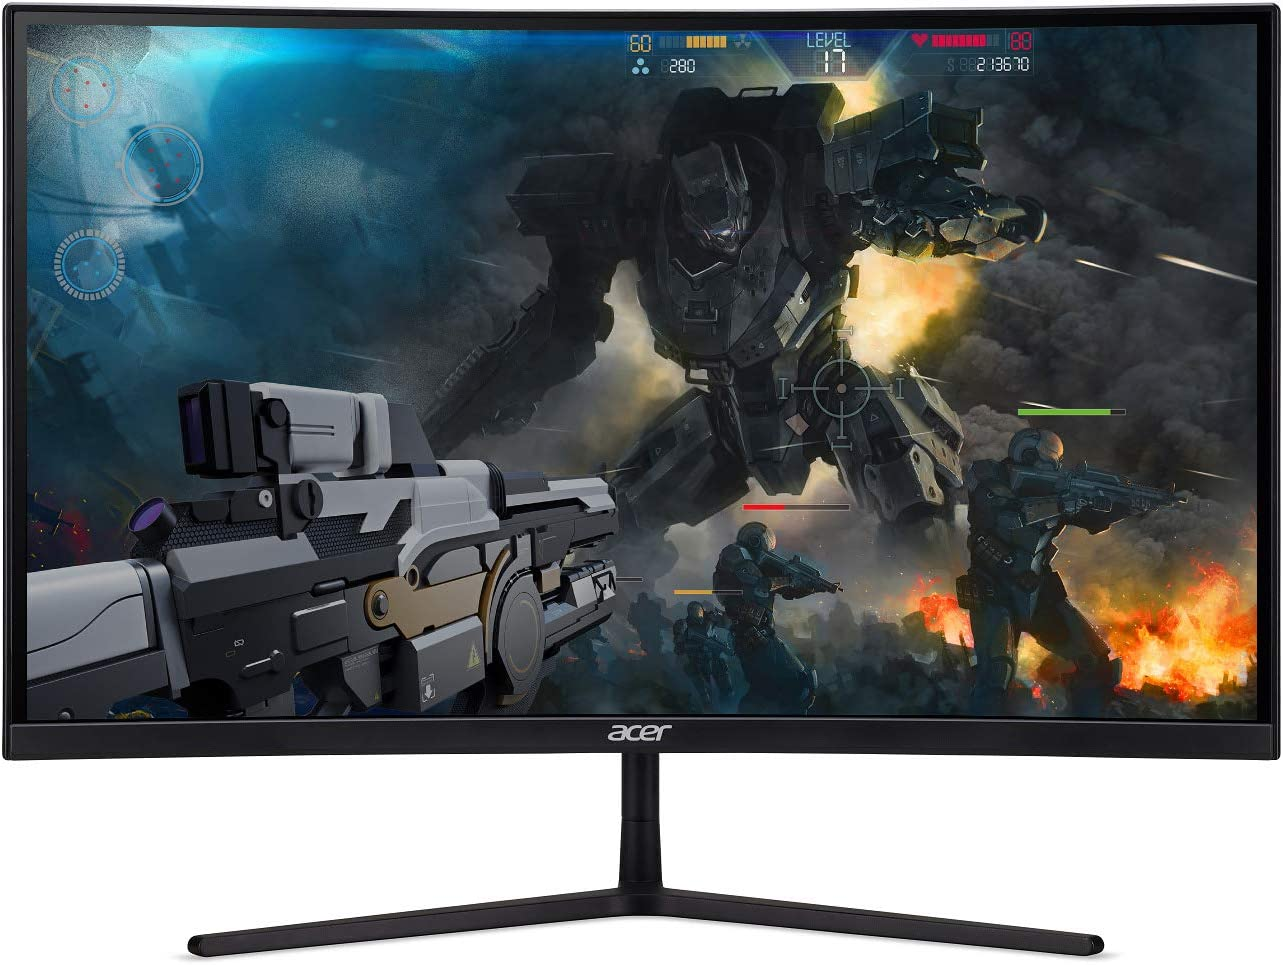 "Acer EI272UR Pbmiiipx 27"" 1500R Curved WQHD (2560 x 1440) VA Gaming Monitor with AMD Radeon FreeSync2 HDR Technology, 144Hz, VESA Certified DisplayHDR400, DCI-P3 (Display Port & 3 x HDMI Ports), Black"